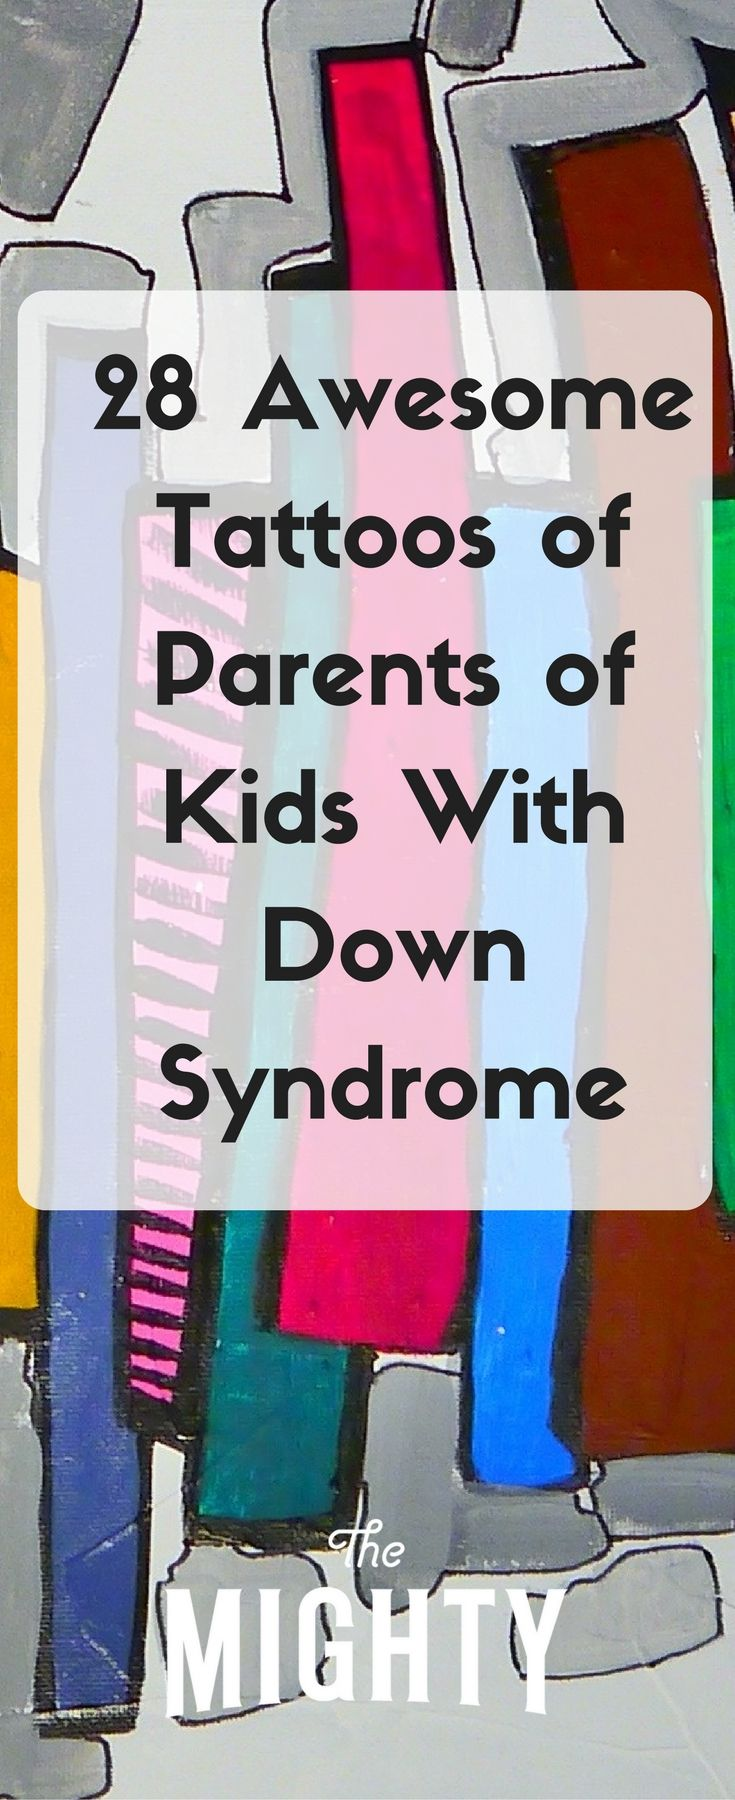 Tattoos of Parents of Kids With Down Syndrome | Th…